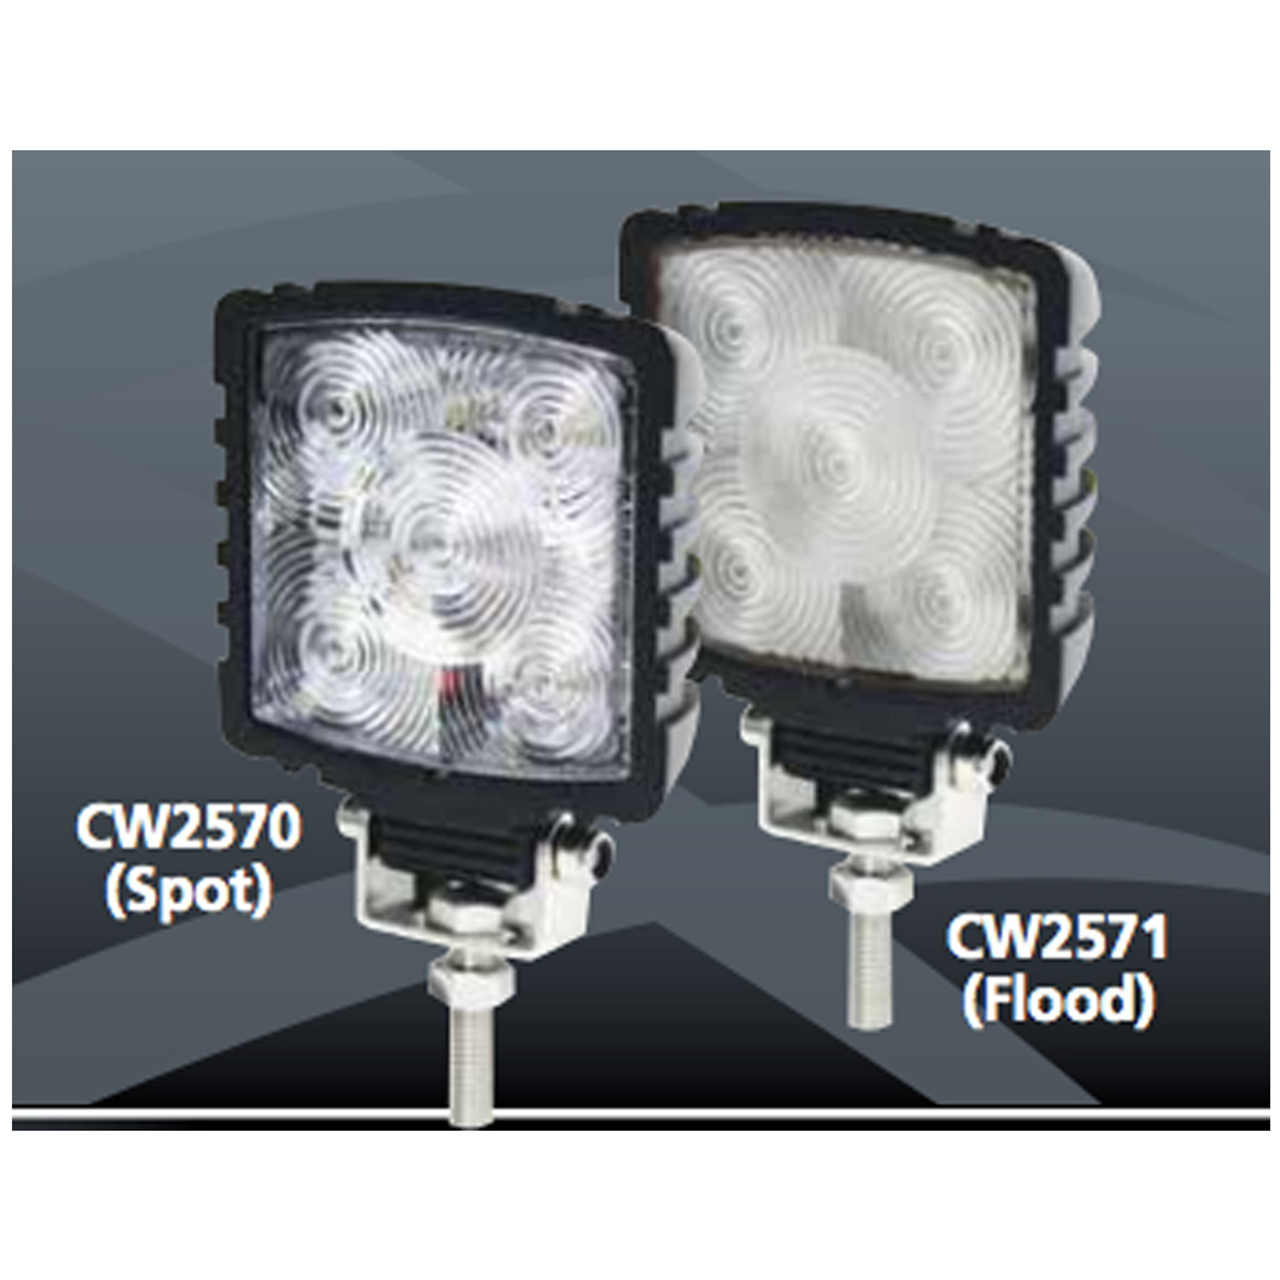 Code-3 Mini Worklight, Spot or Flood Light CW2570